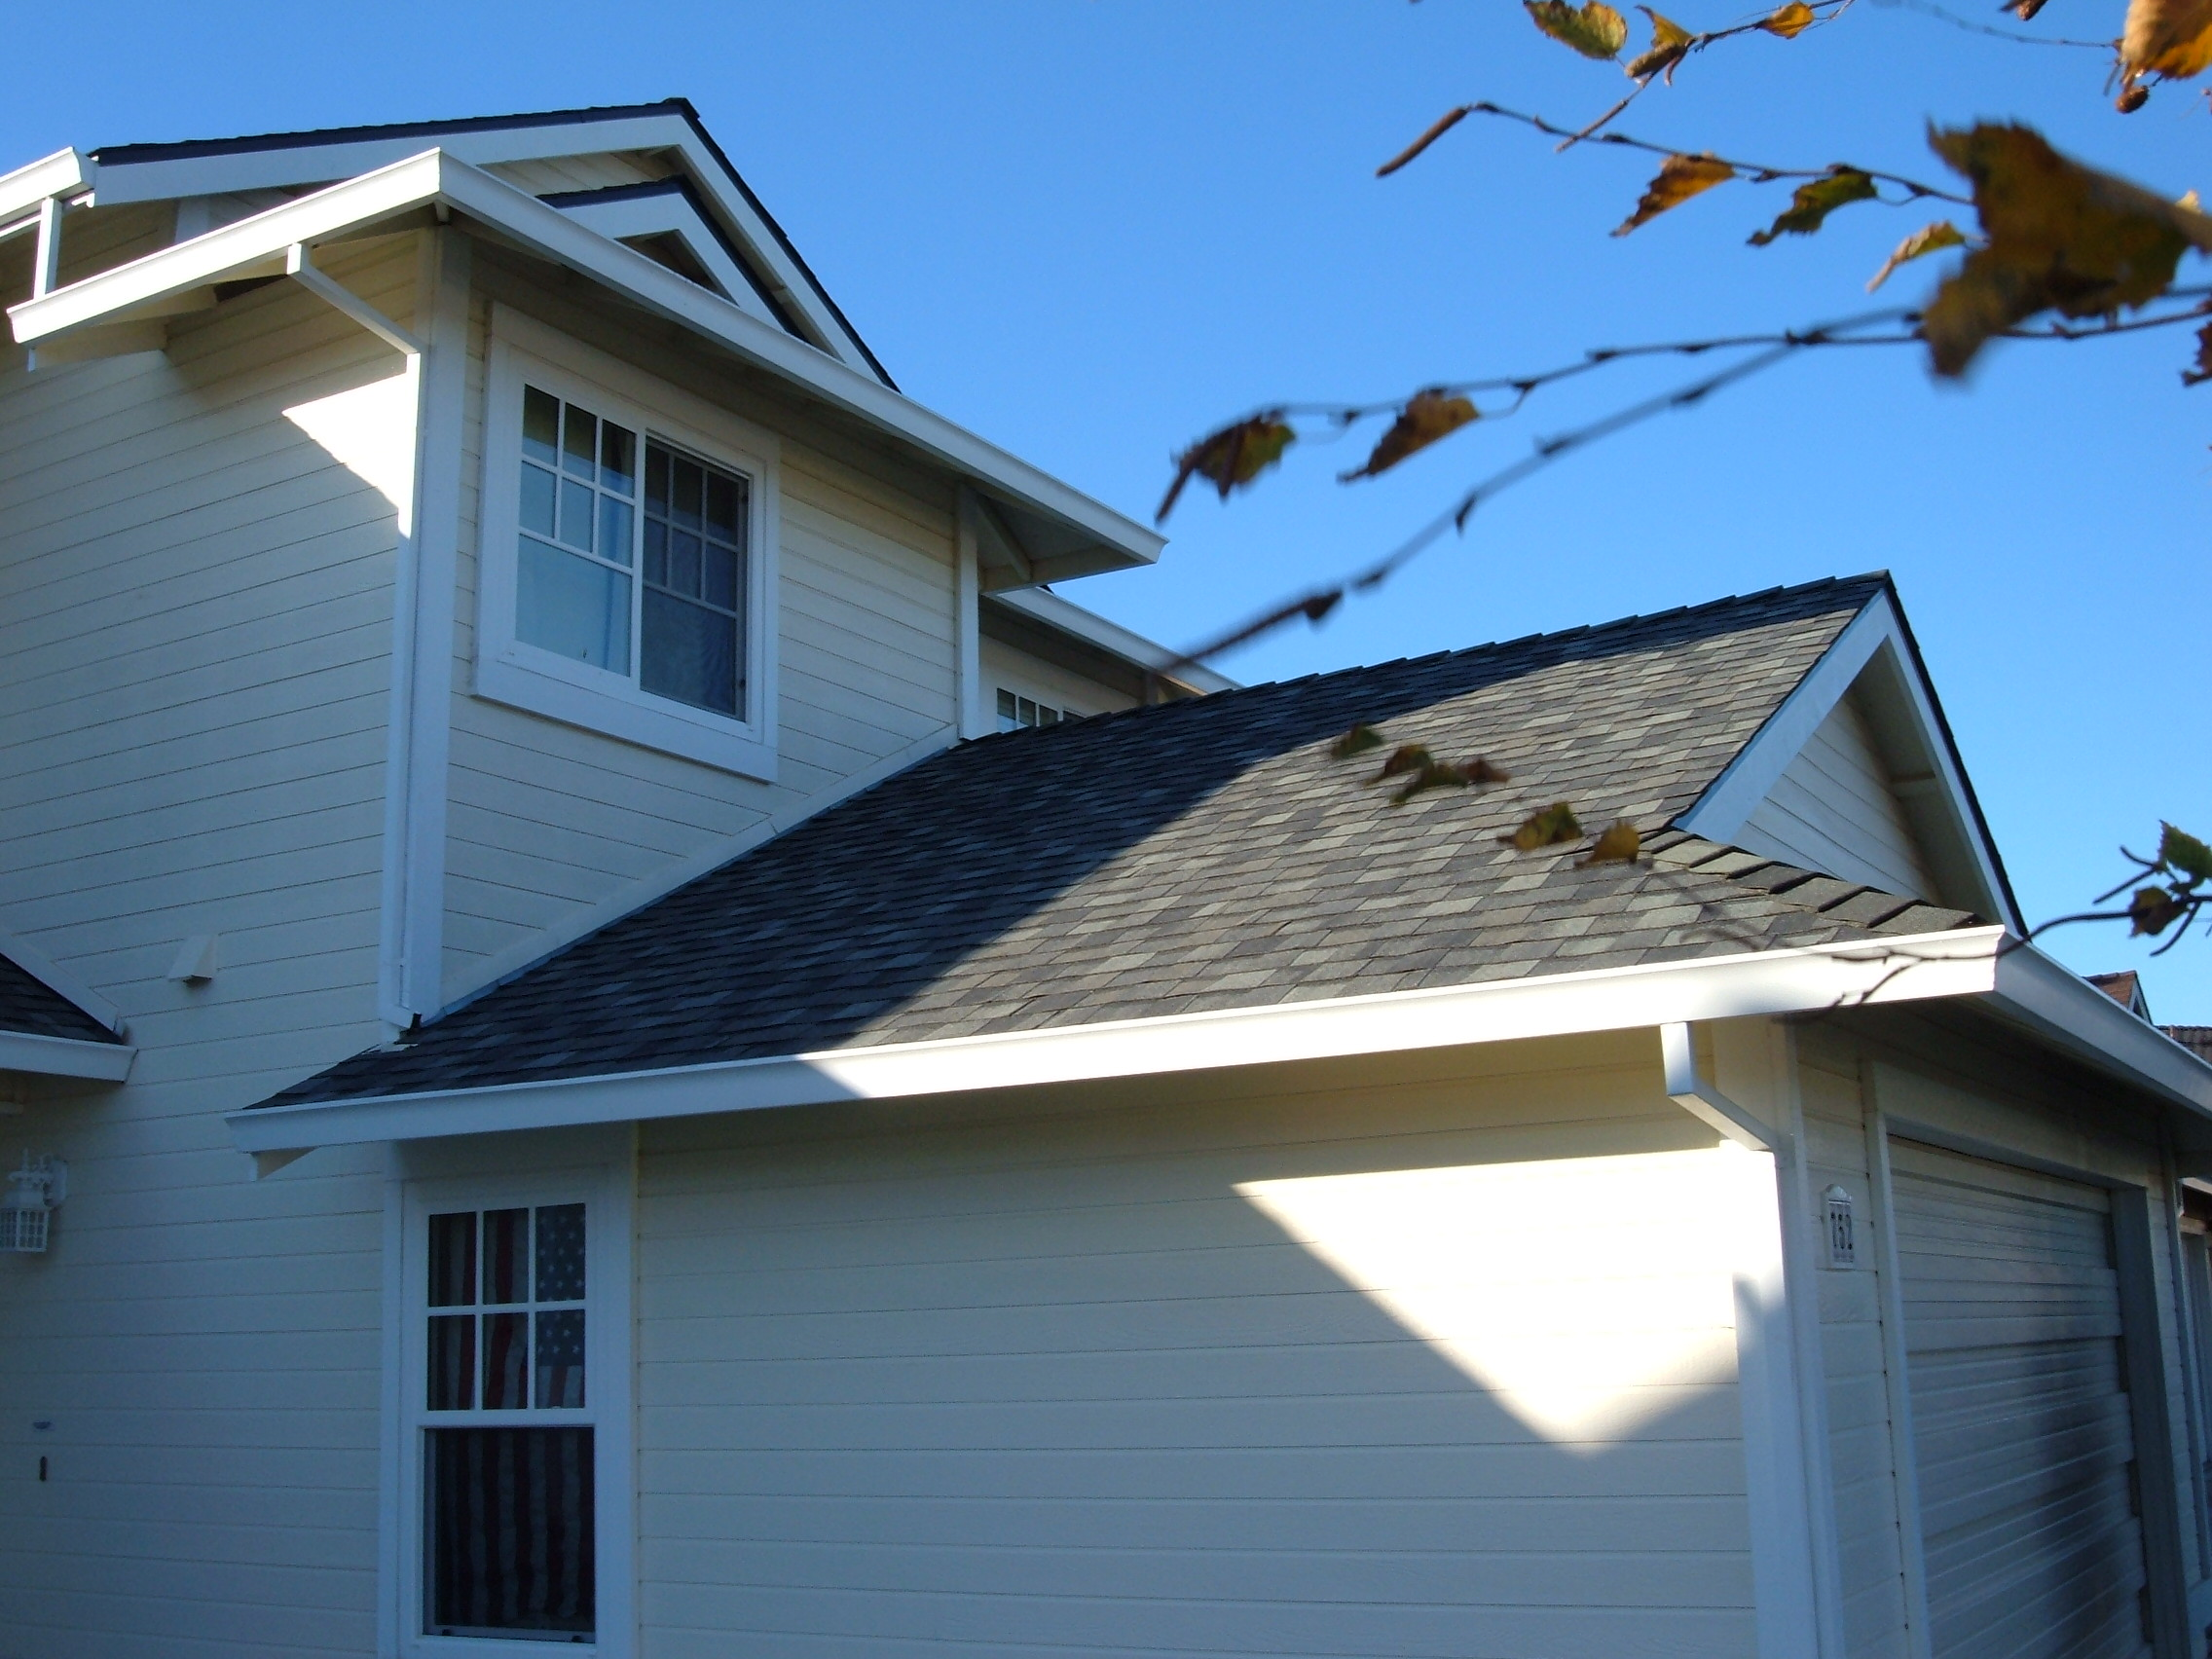 Architectural Roofing And Construction image 0